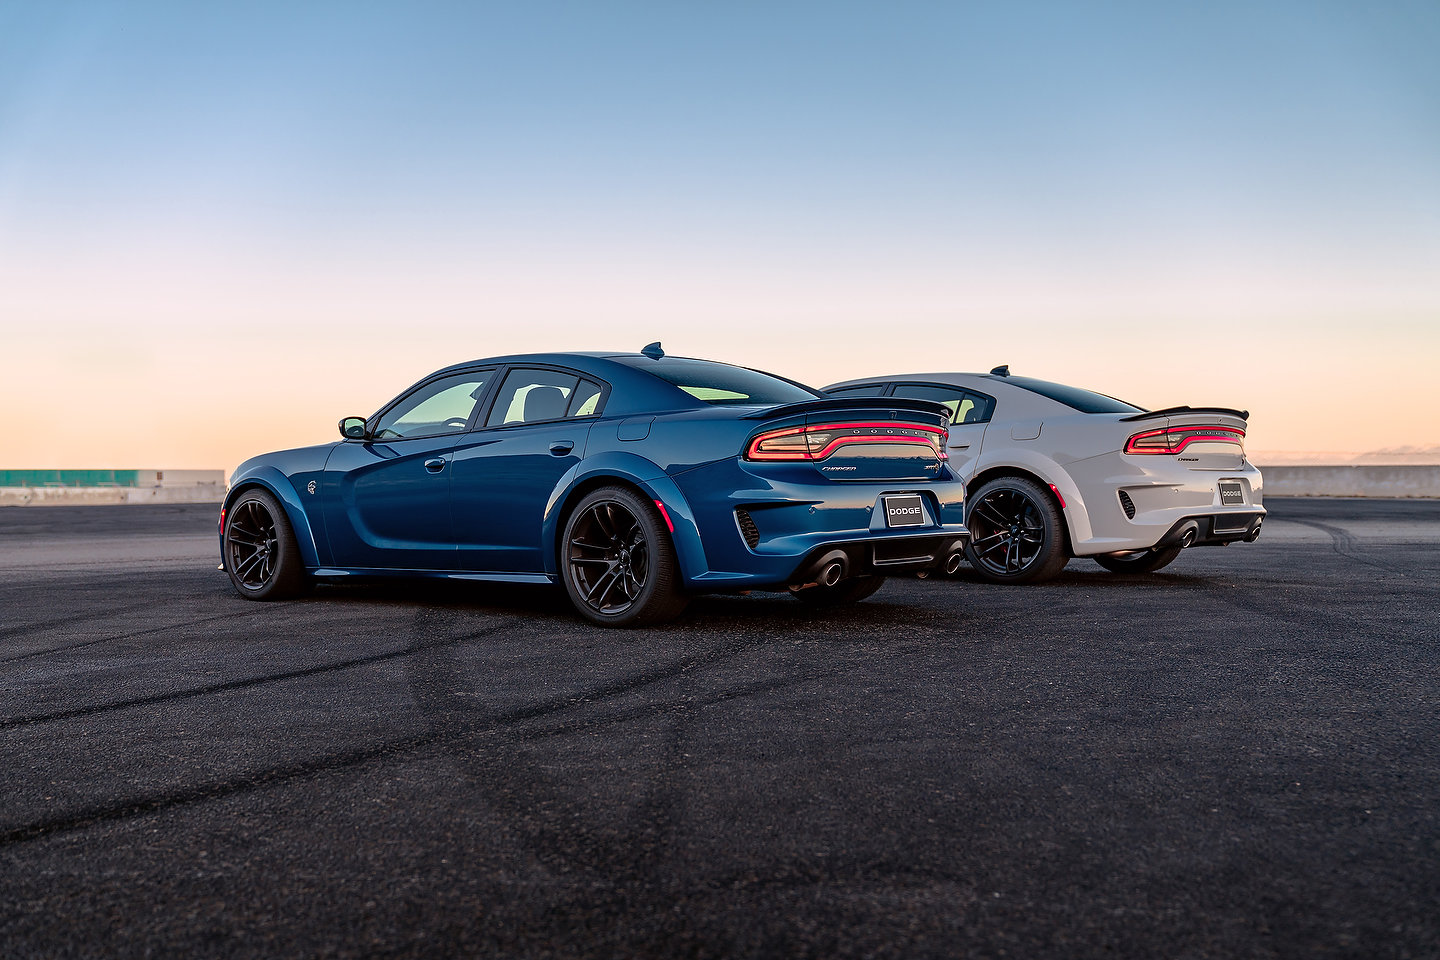 2020 Dodge Charger SRT Hellcat Widebody